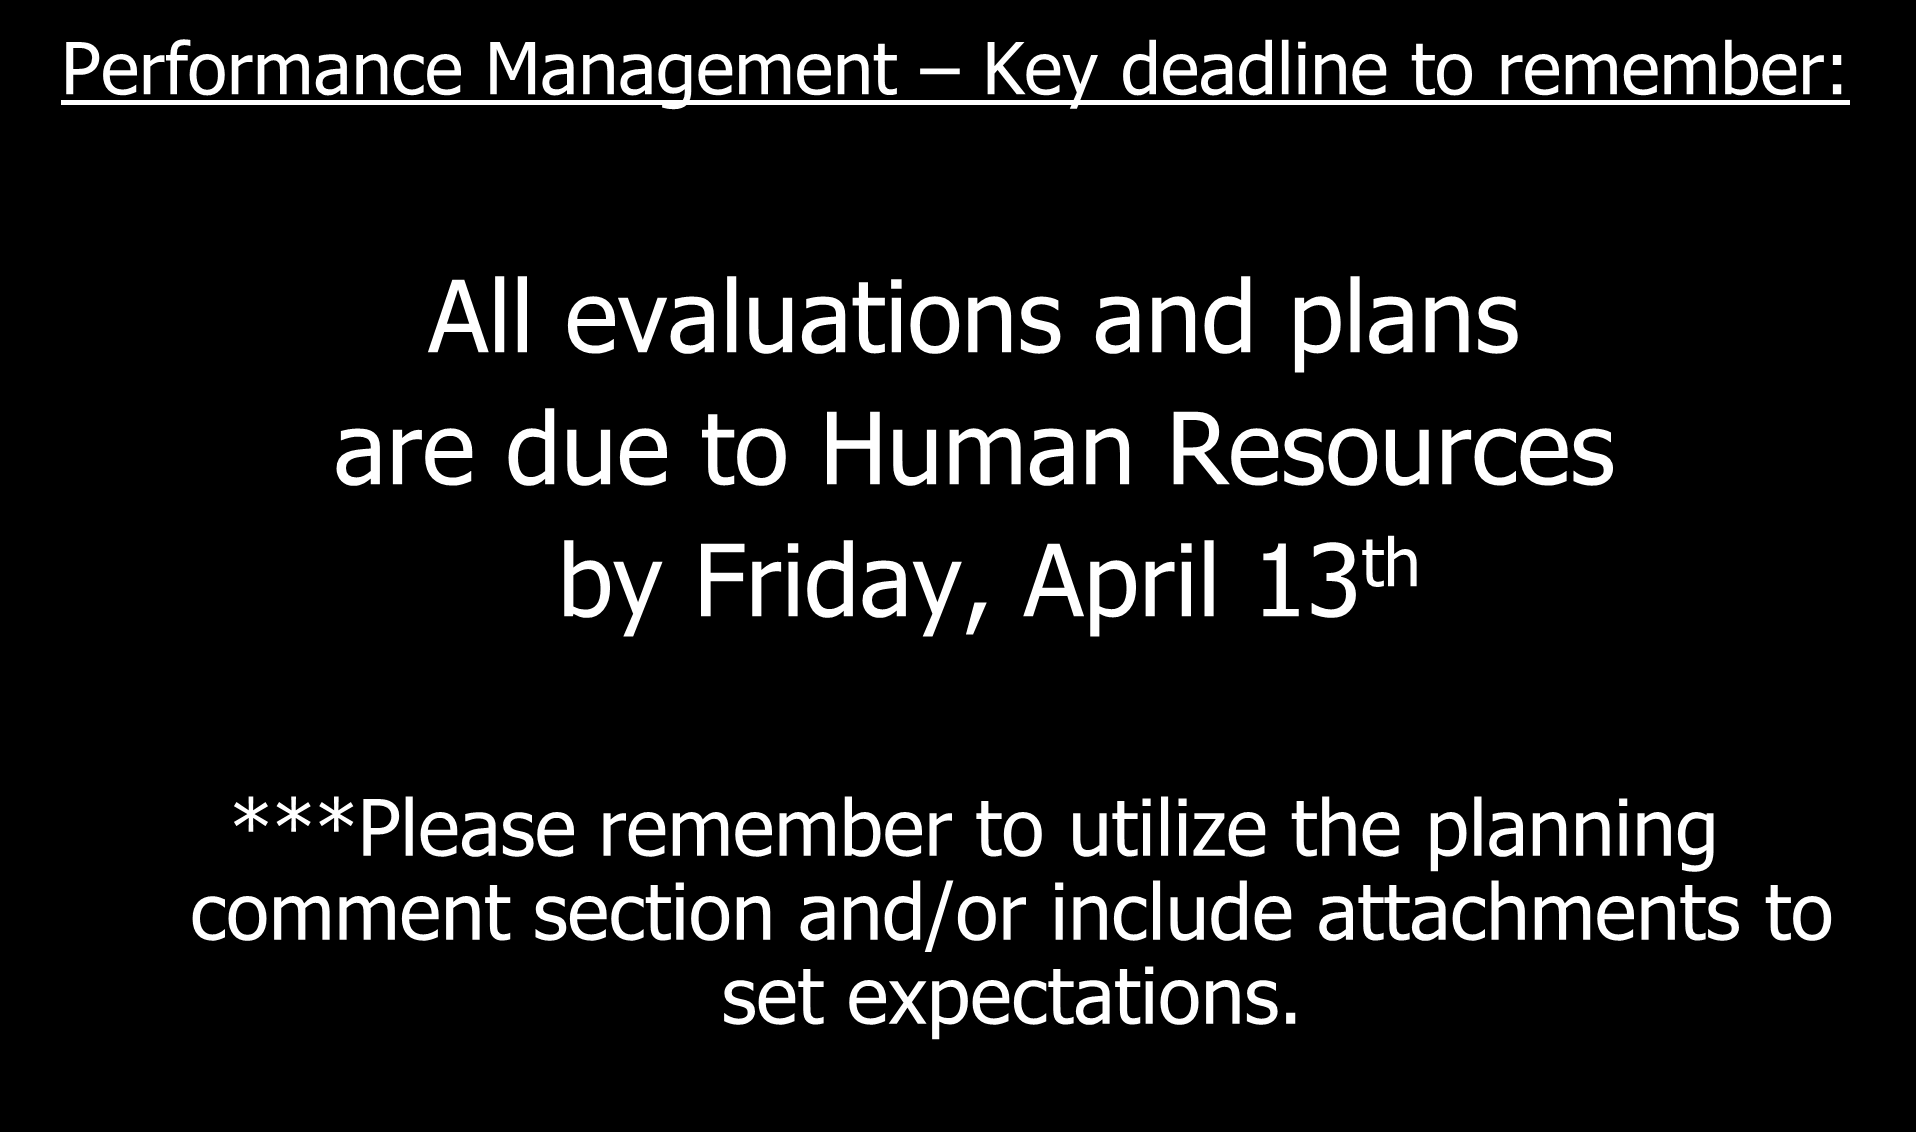 Performance Management Key deadline to remember: All evaluations and plans are due to Human Resources by Friday,